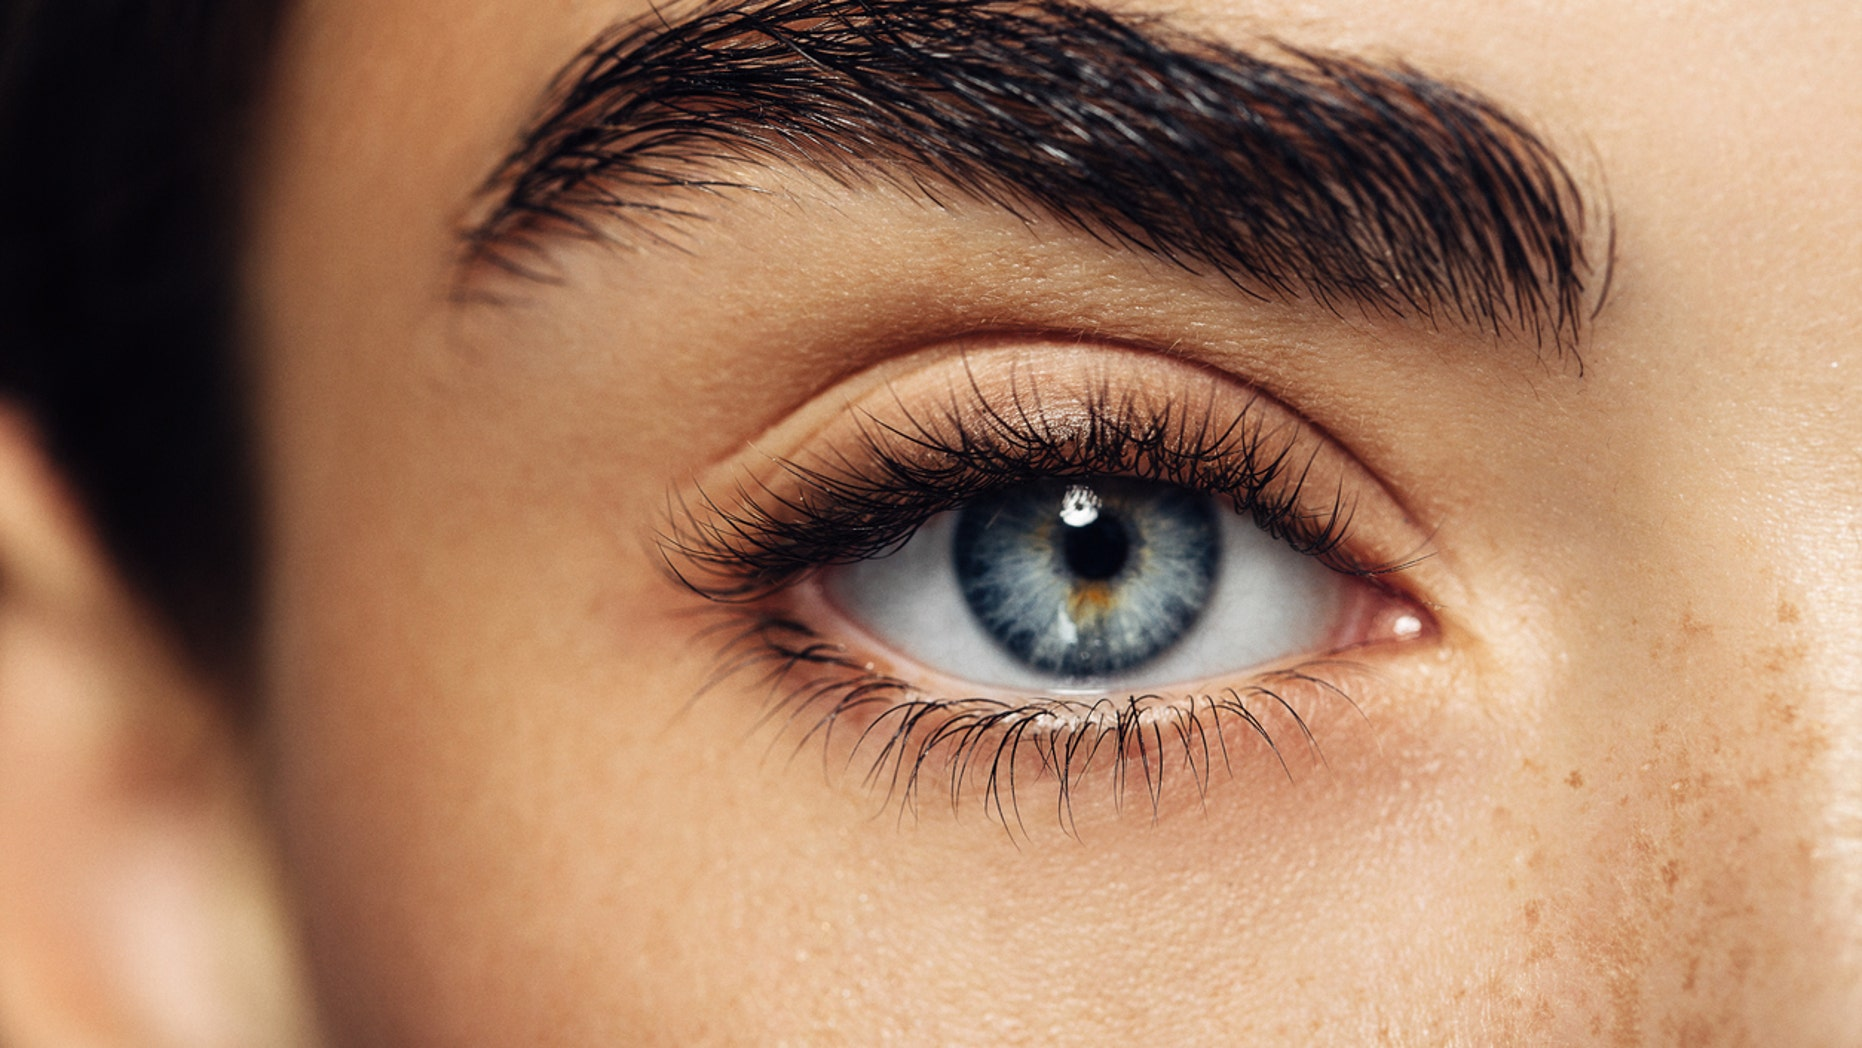 The study found evidence ofprions— the infectious proteins that cause the disease — in the eyes of nearly a dozen patients with CJD.